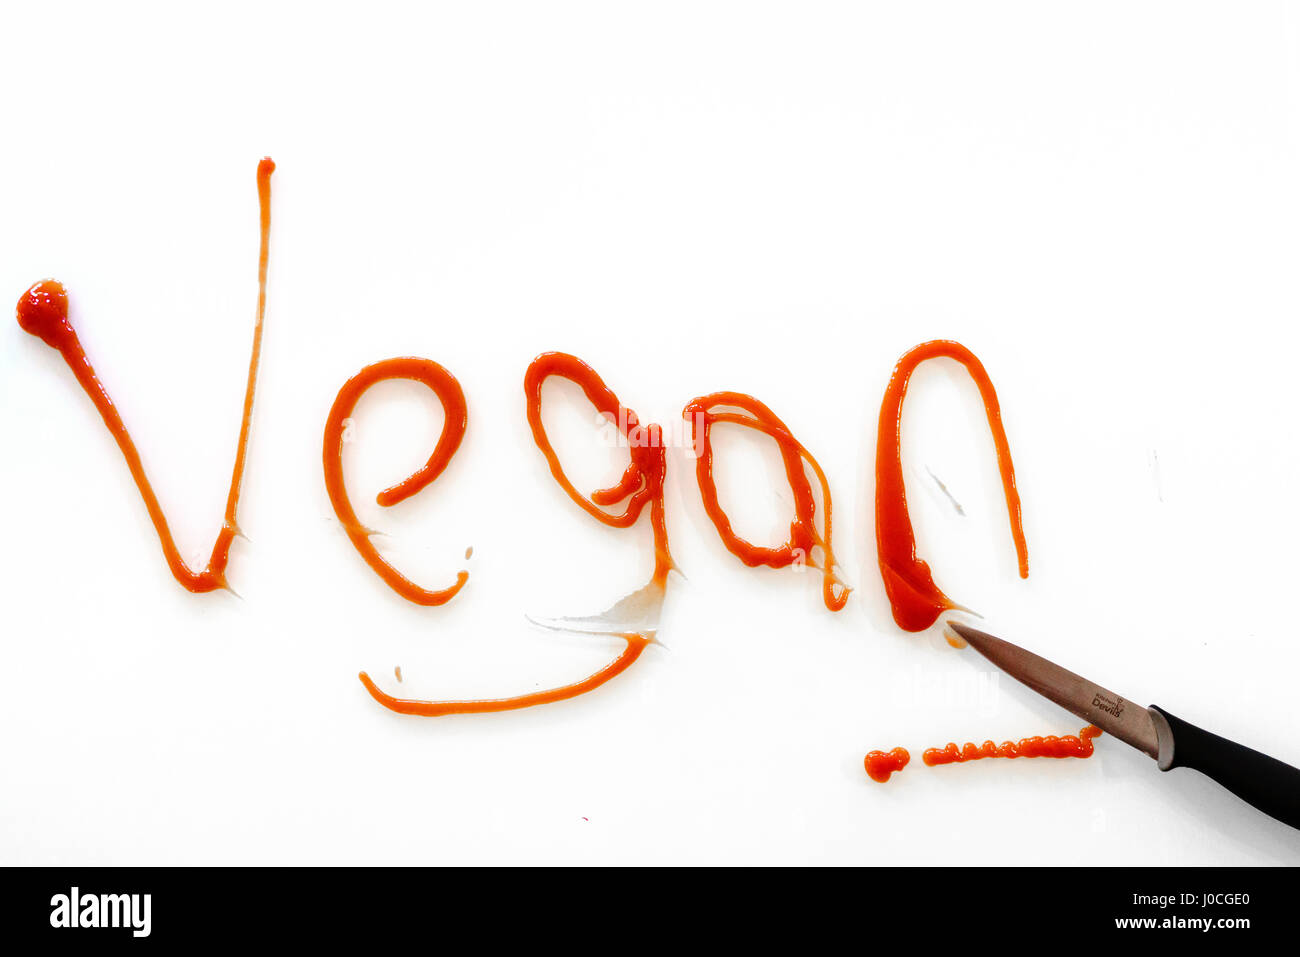 The word 'Vegan' shown as lifestyle graffiti Stock Photo